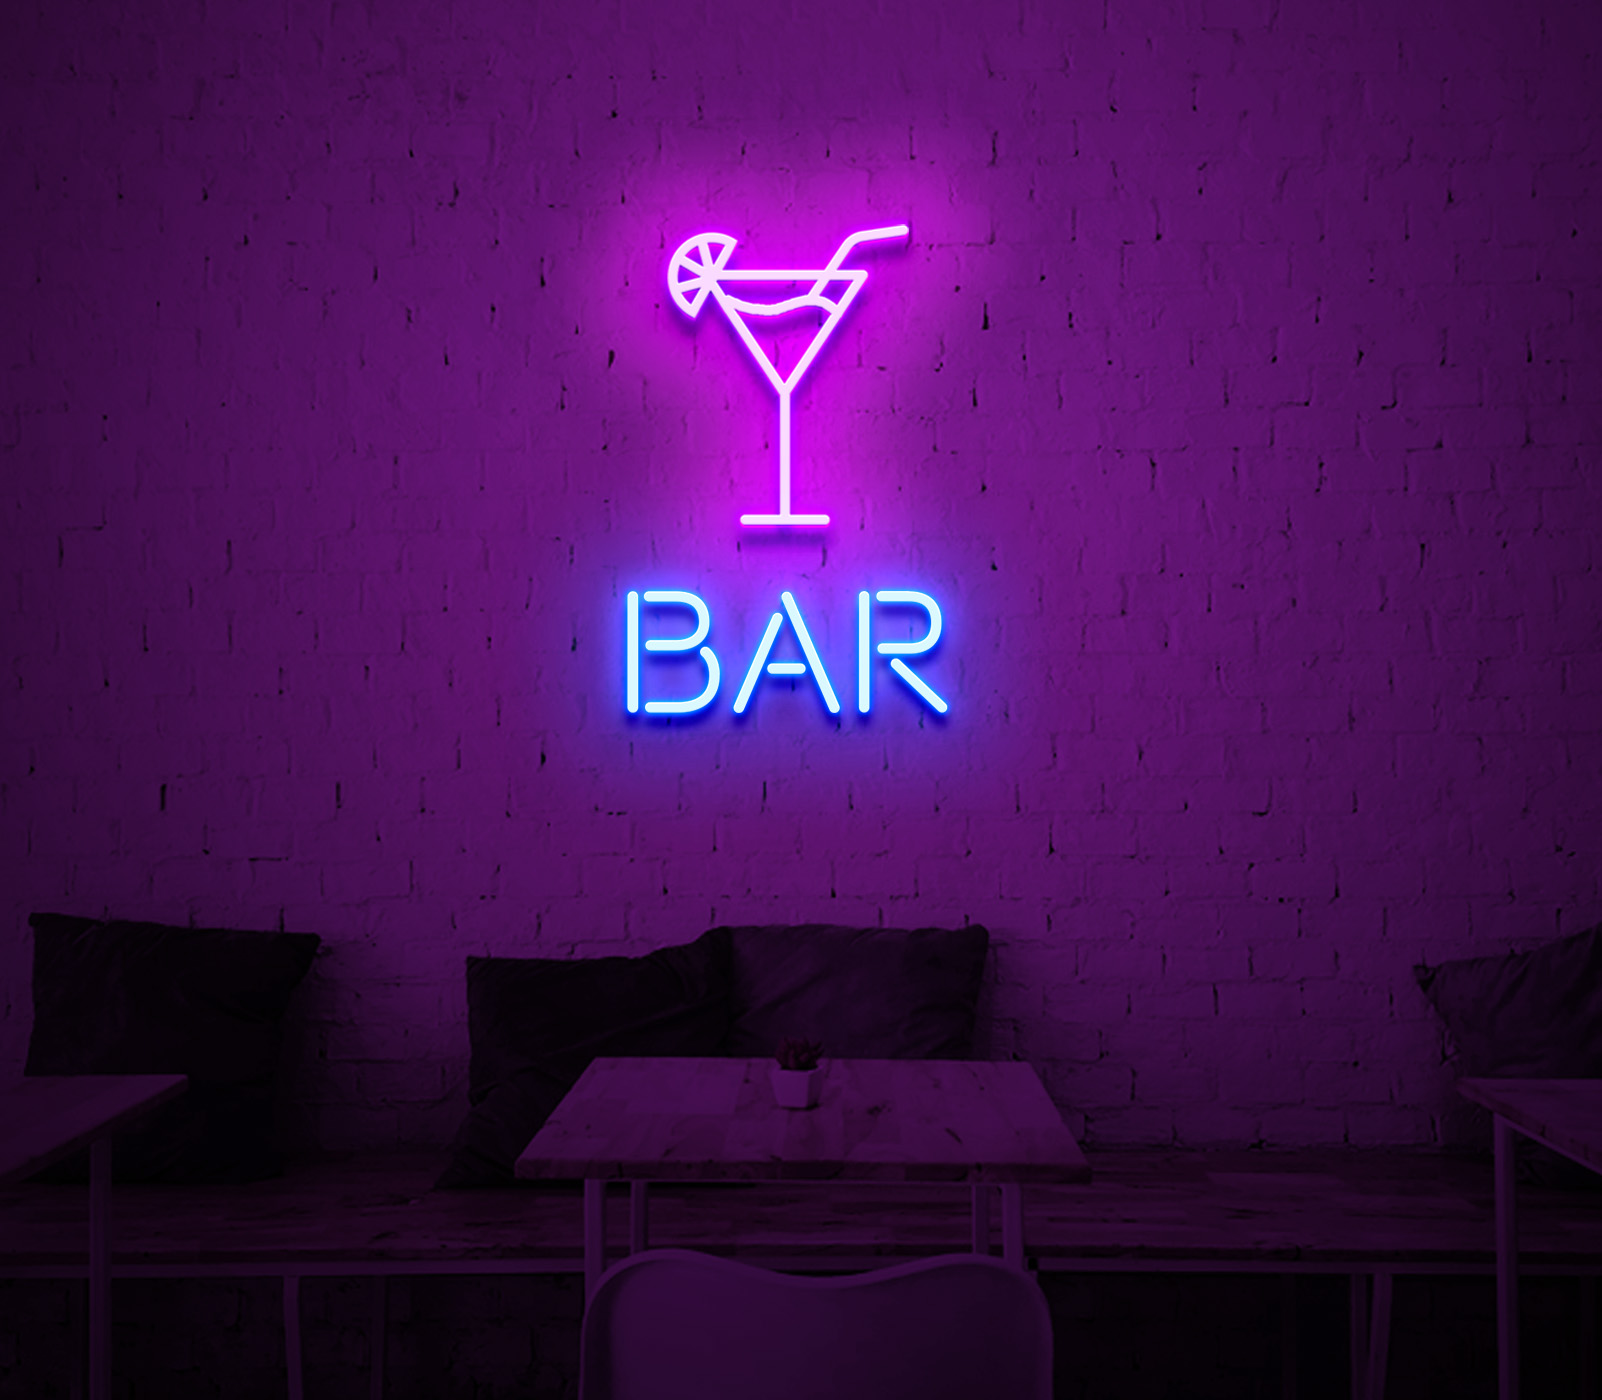 cocktails and bar neon sign